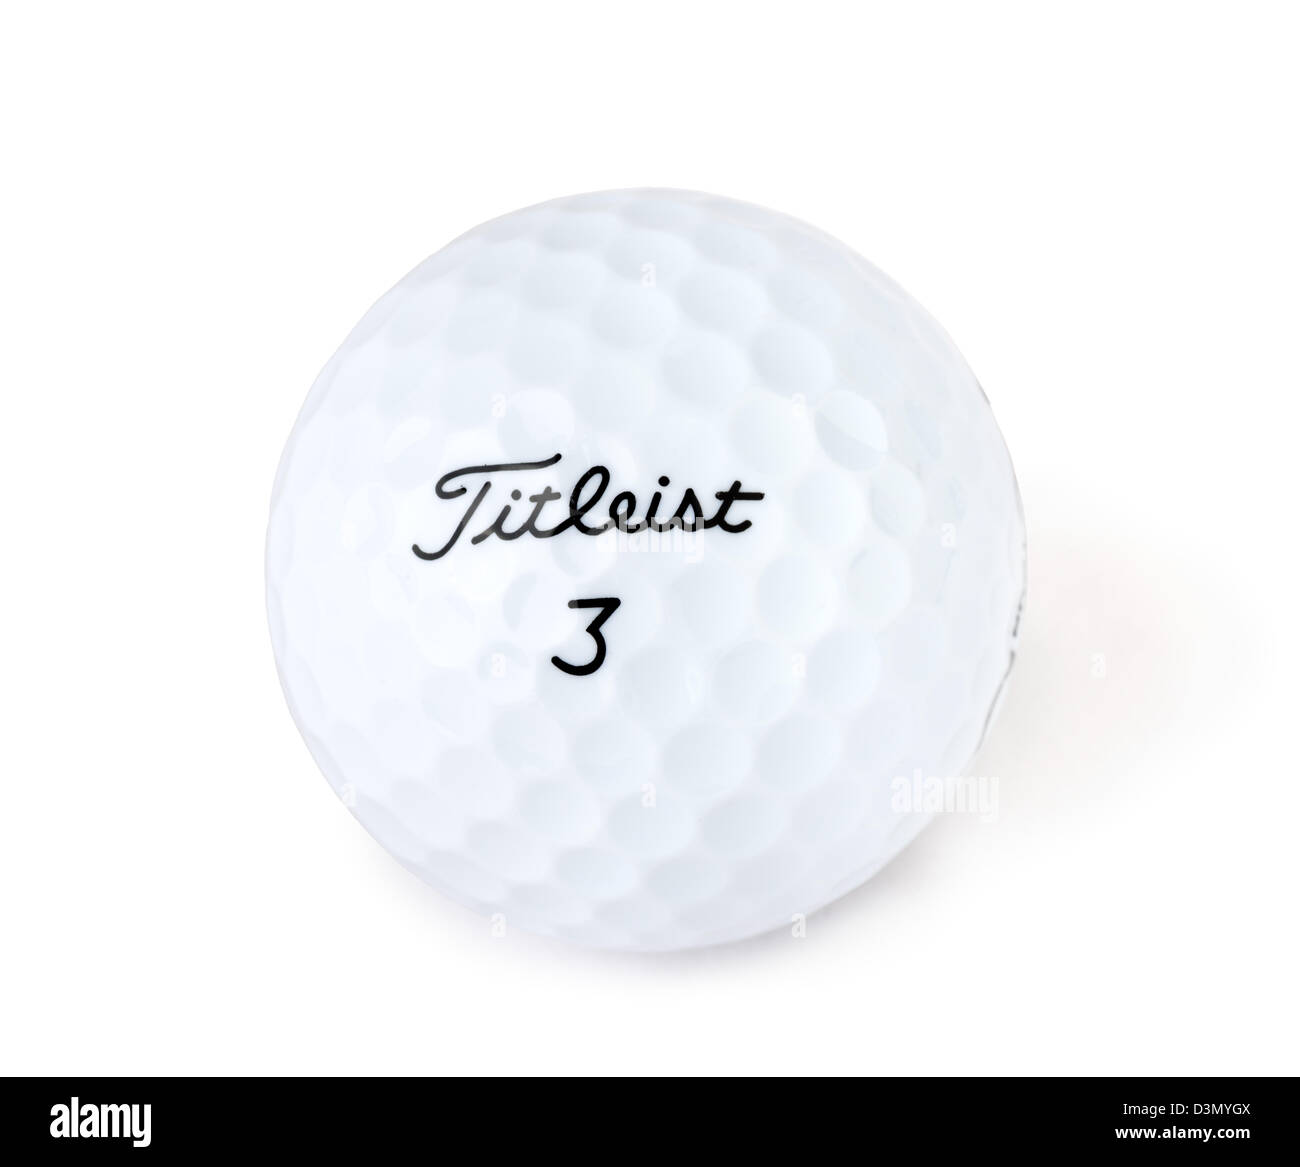 Titleist pallina da golf Immagini Stock